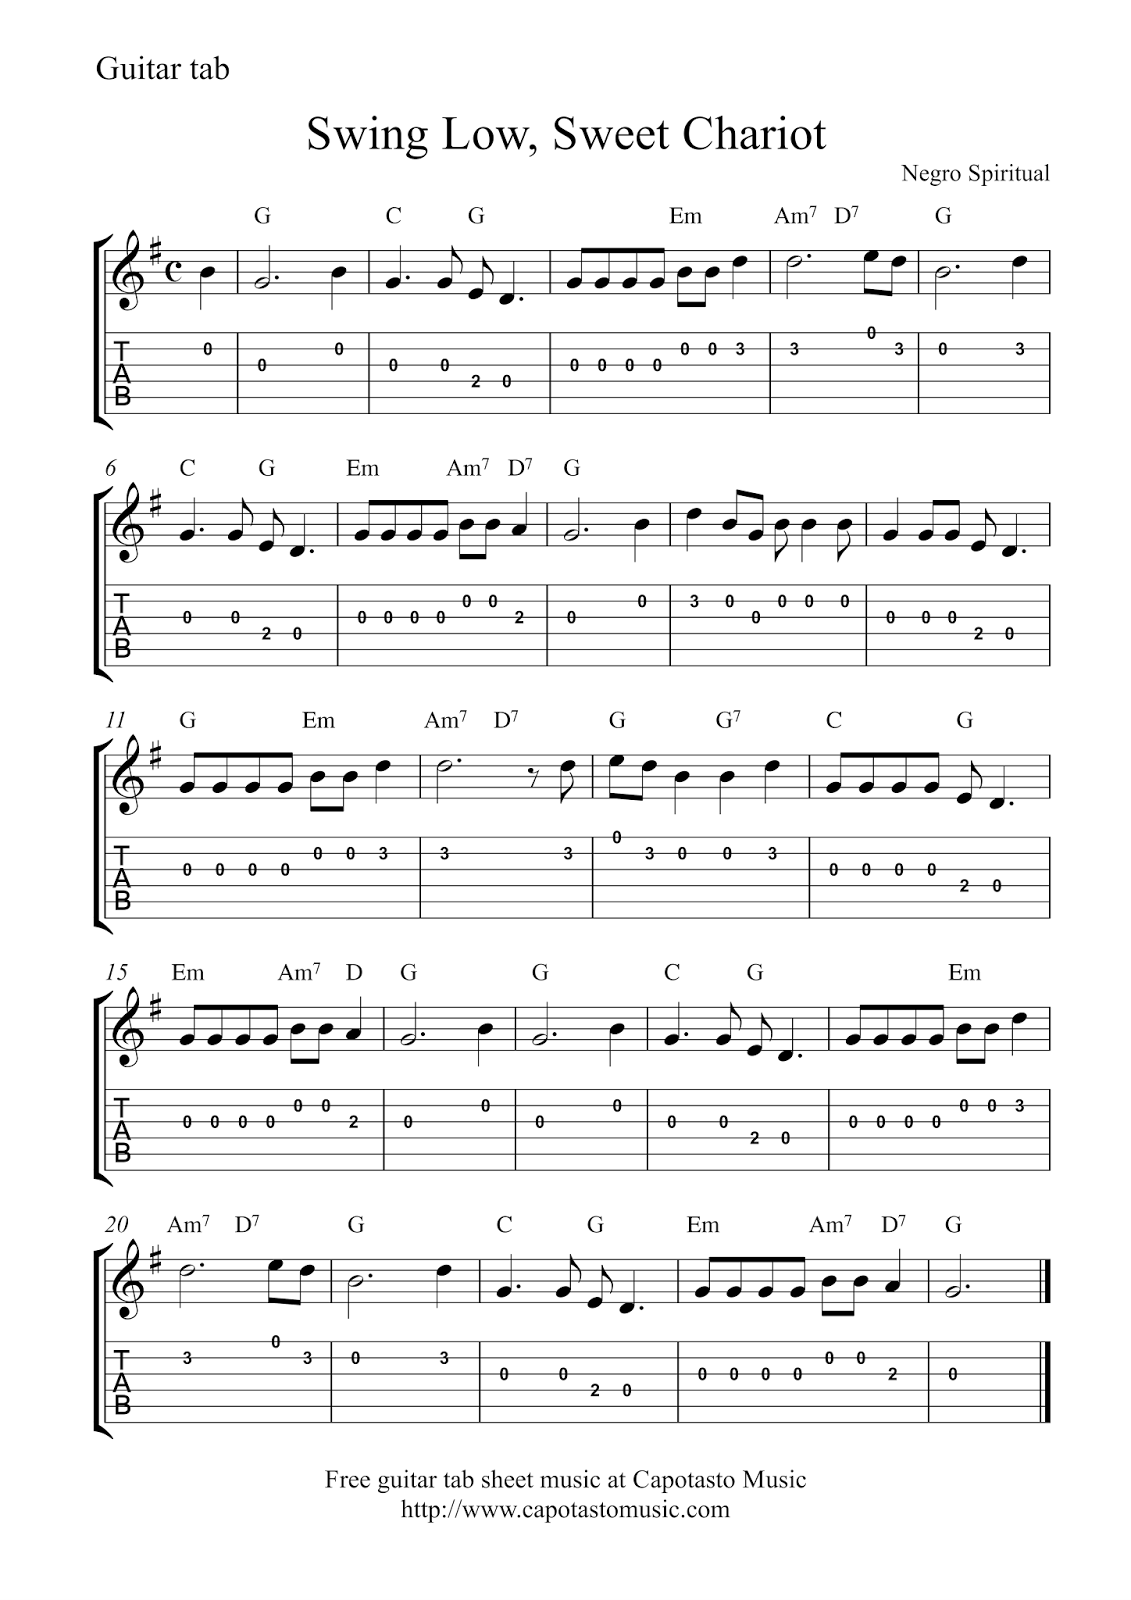 Swing low sweet chariot guitar tab melodyg 11311600 music easy guitar melody solo arrangement of the song swing low sweet chariot in g major the melody is notated with sheet music and chord symbol hexwebz Choice Image